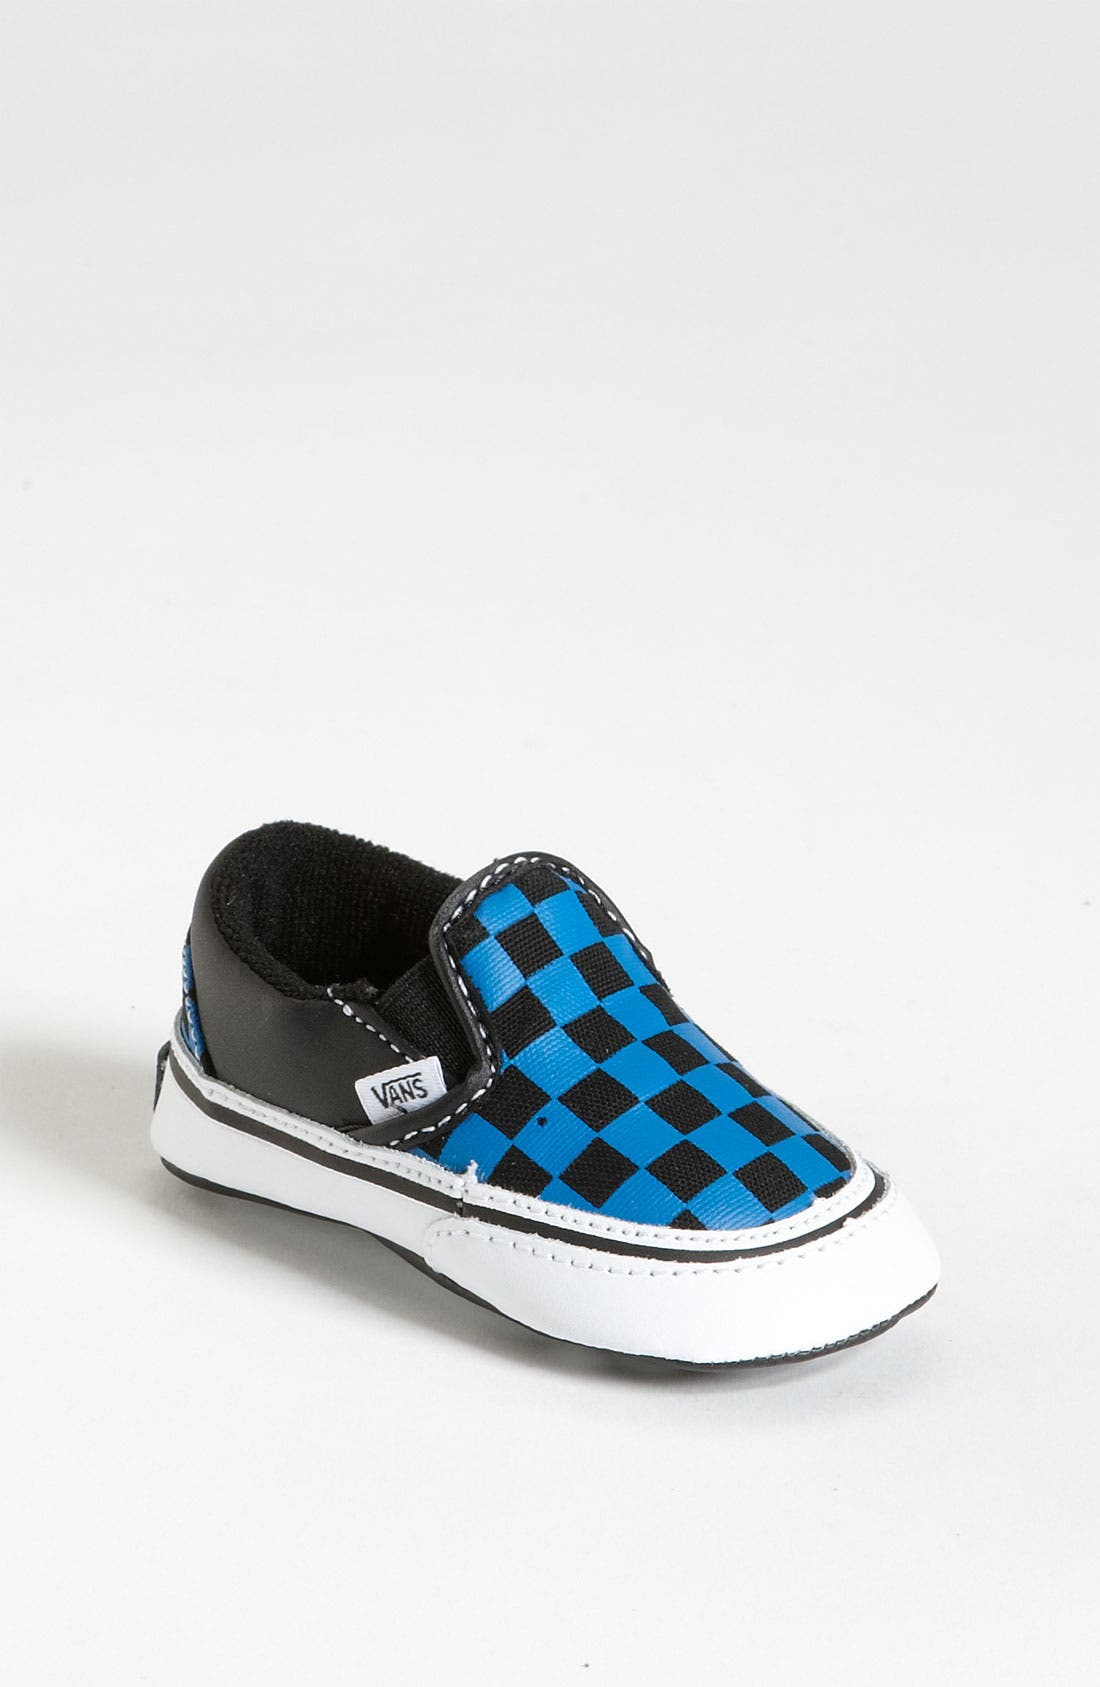 Alternate Image 1 Selected - Vans 'Classic - Checker' Slip-On Sneaker (Baby)